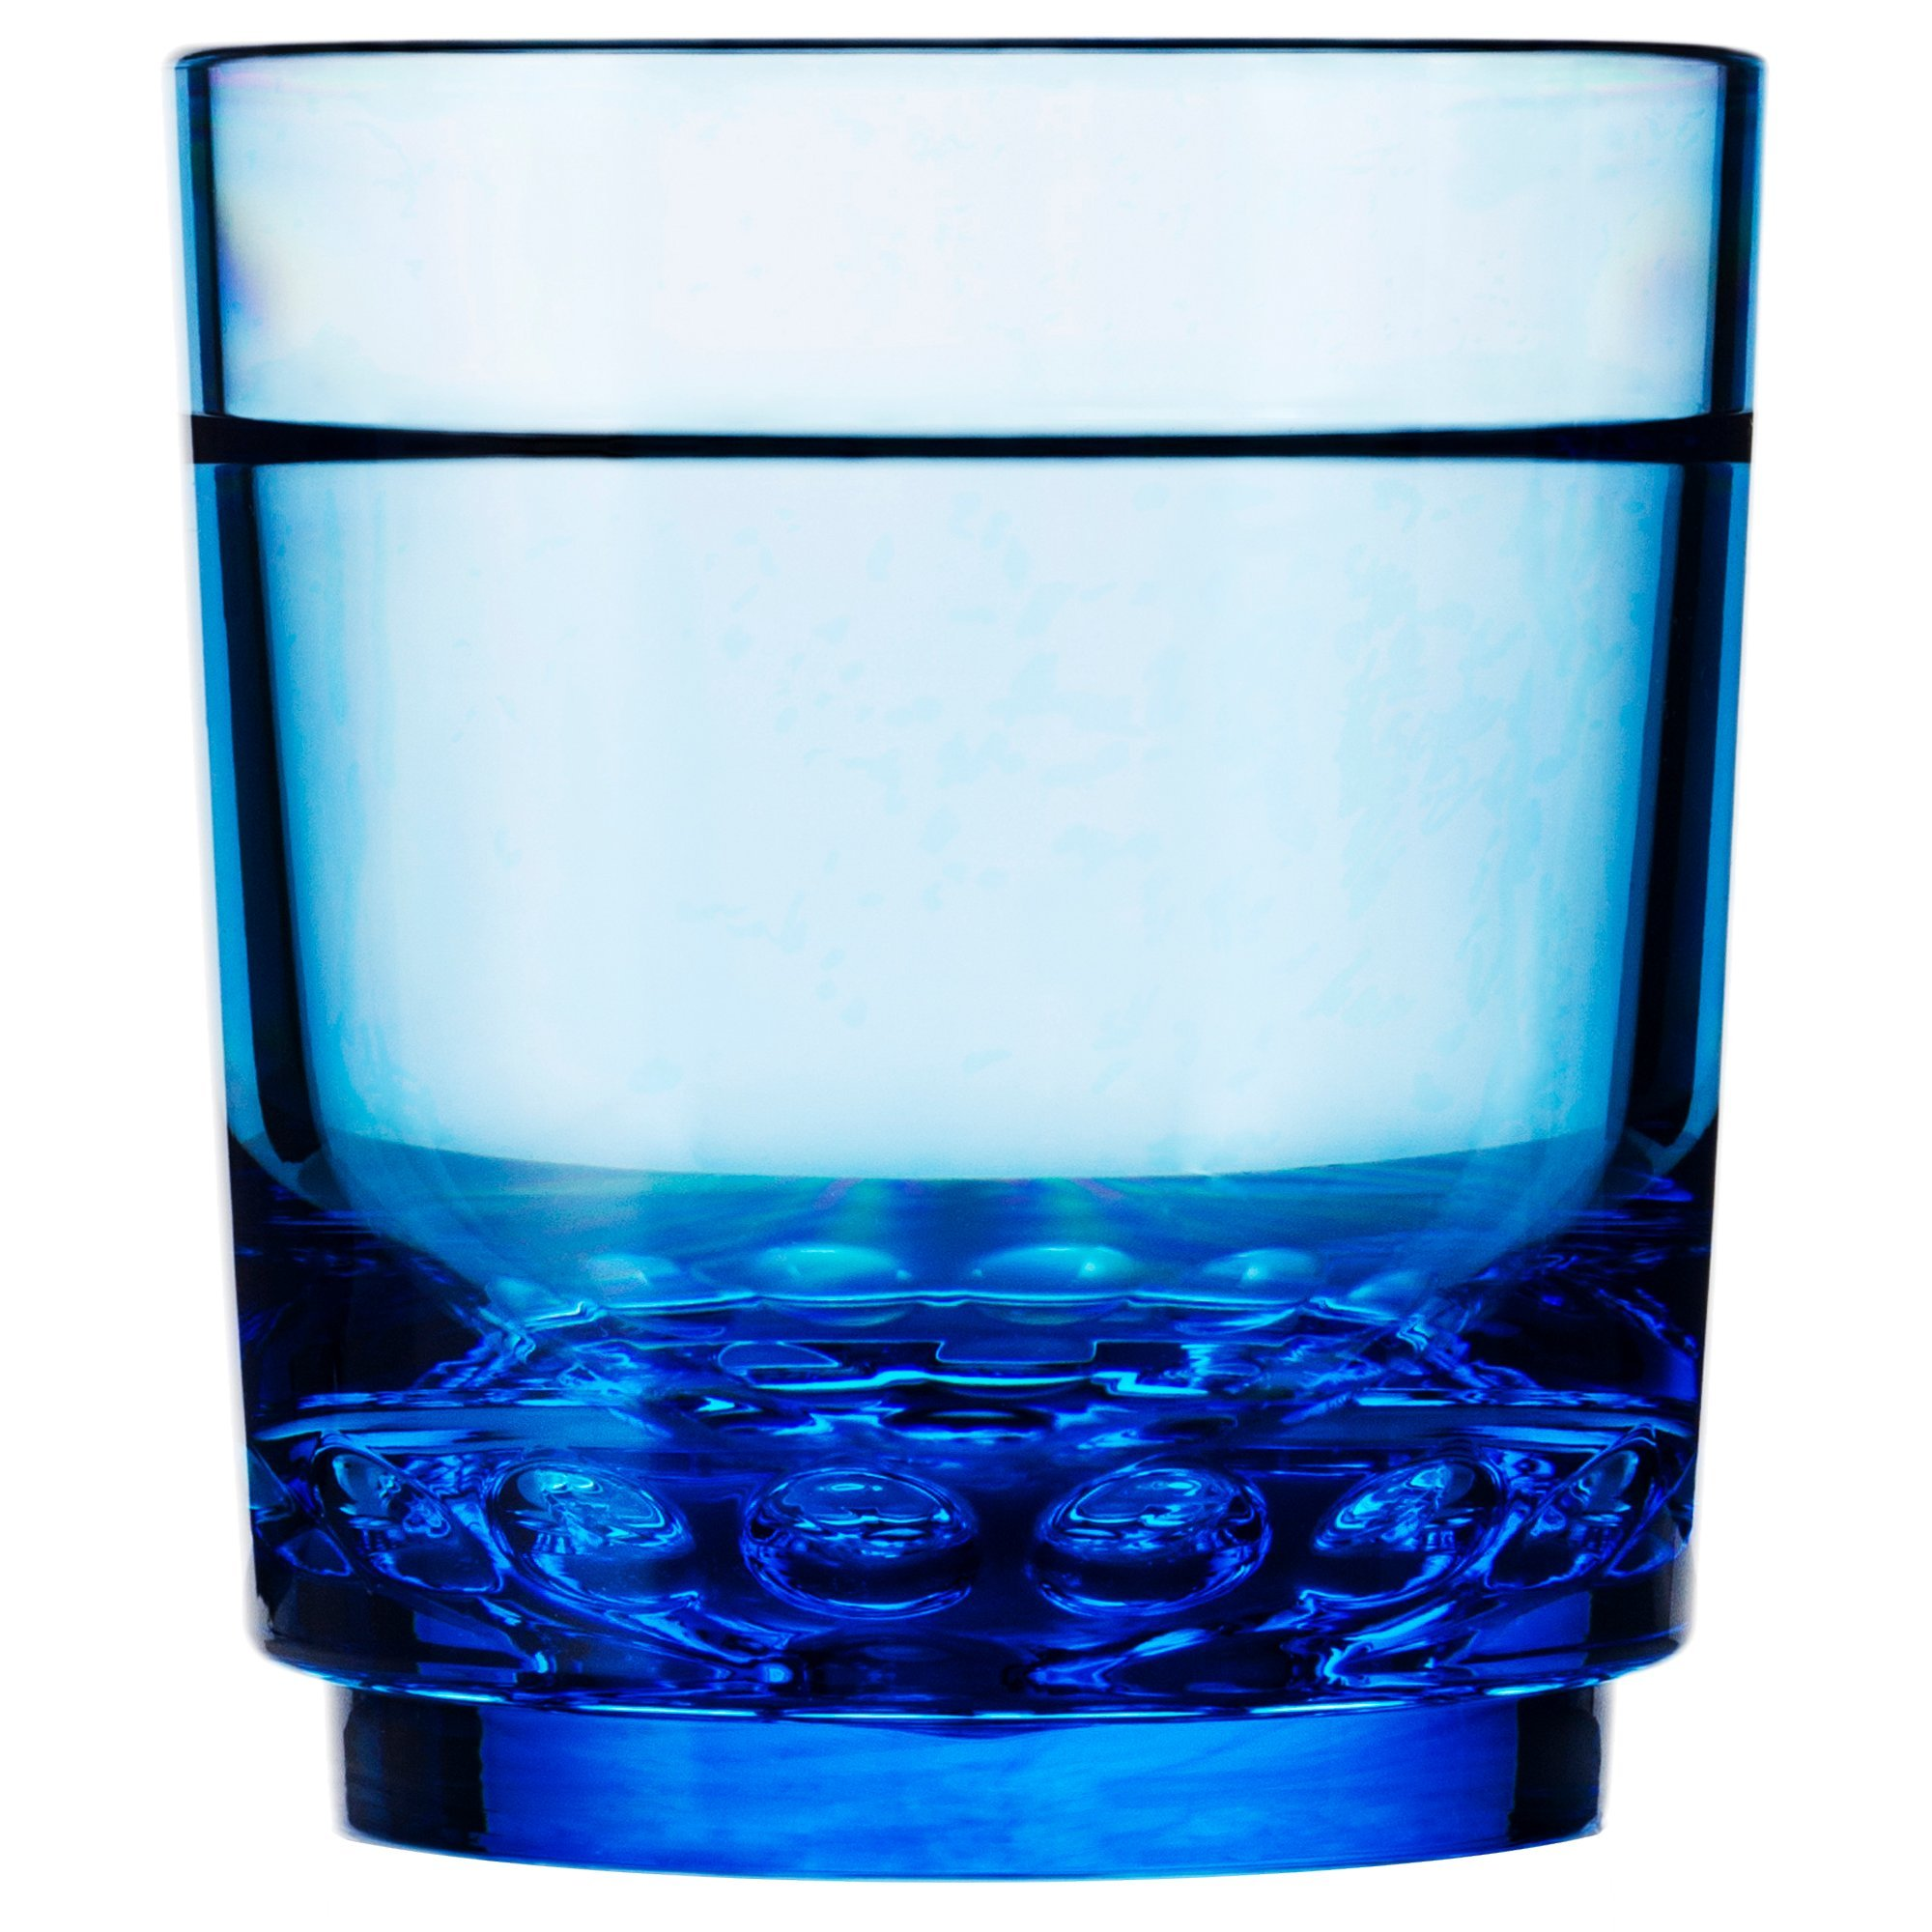 Drinique ELT-SR-BLU-4 Elite Shooter Unbreakable Tritan Drinking Glasses, 7 oz (Set of 4), Blue